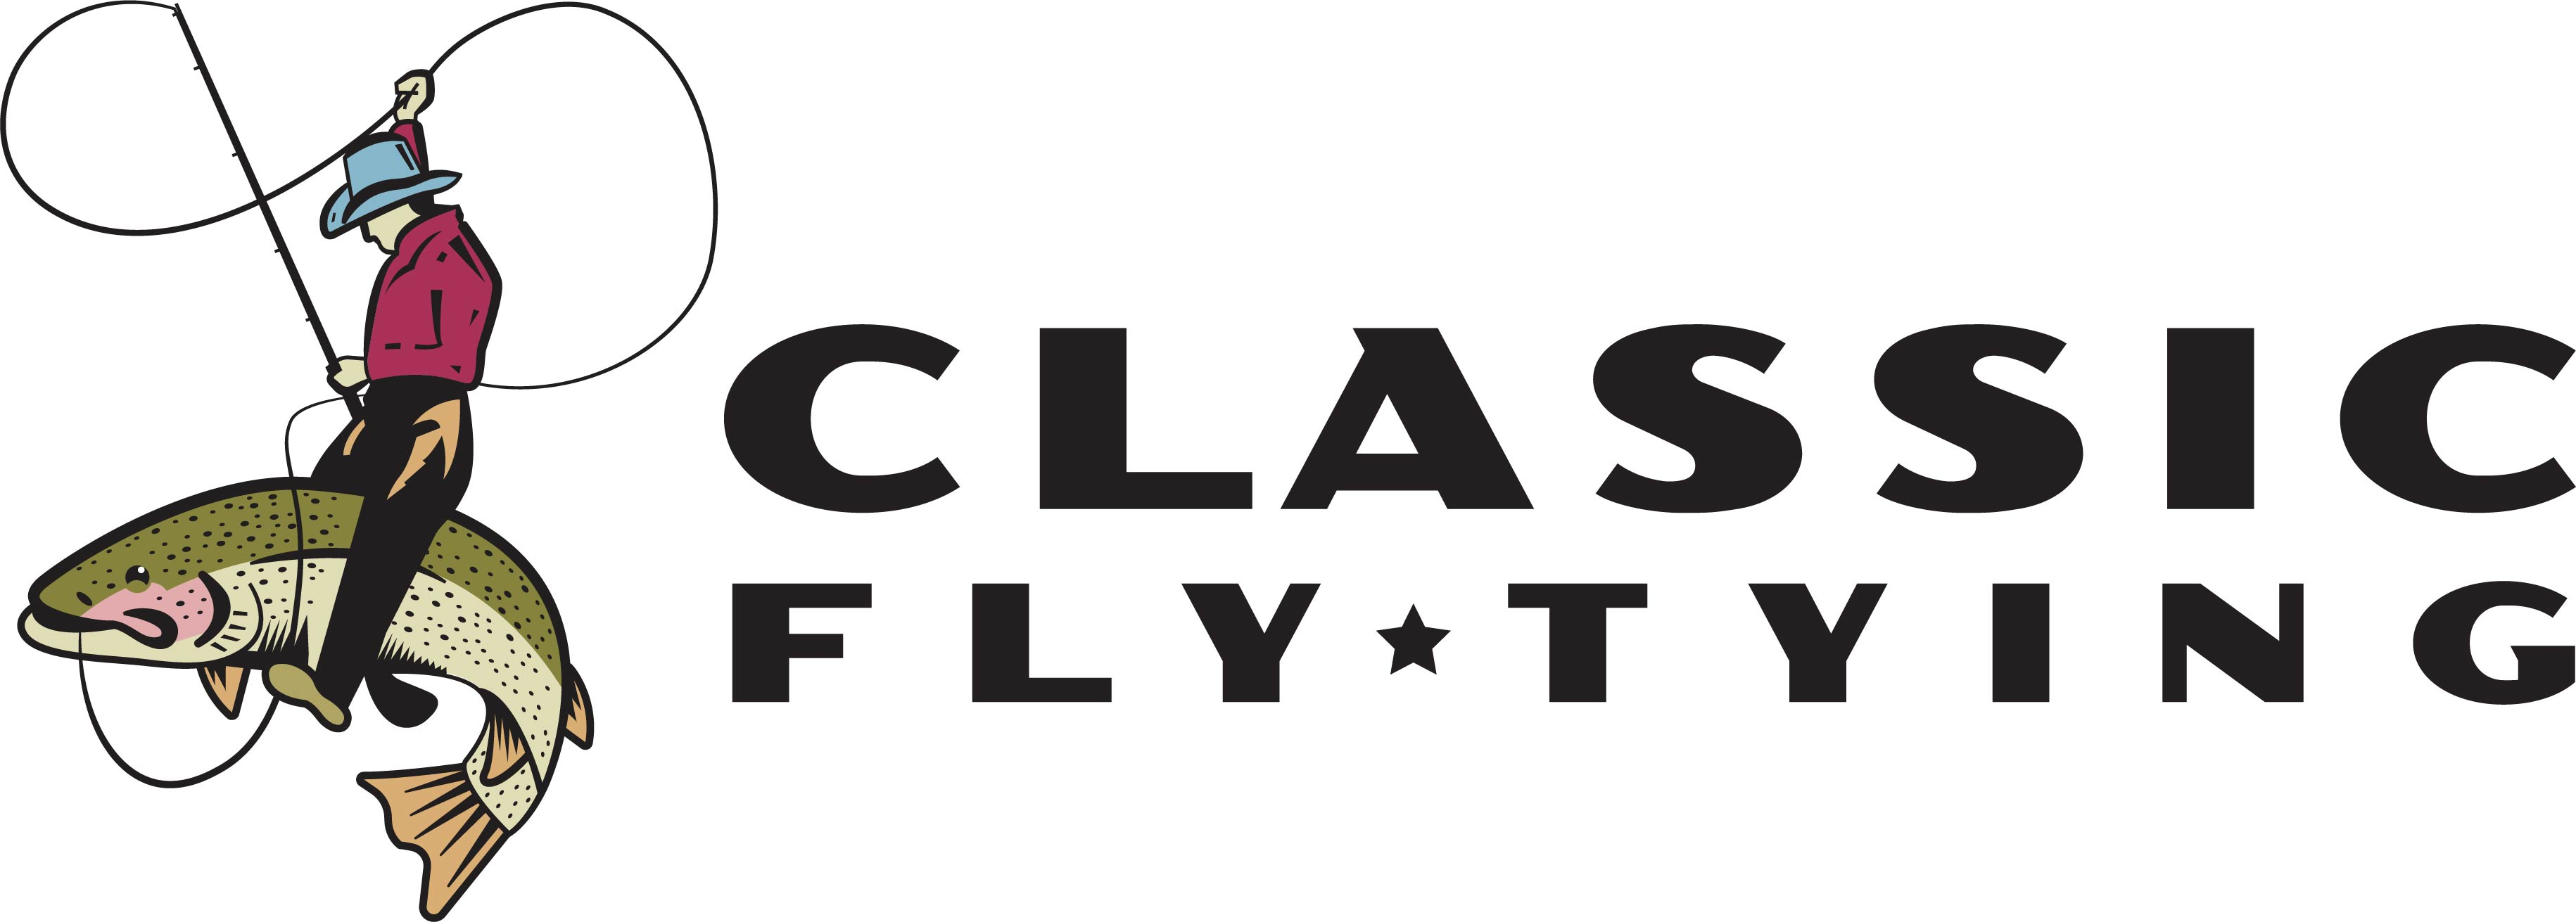 Classic Fly Tying Color Logo